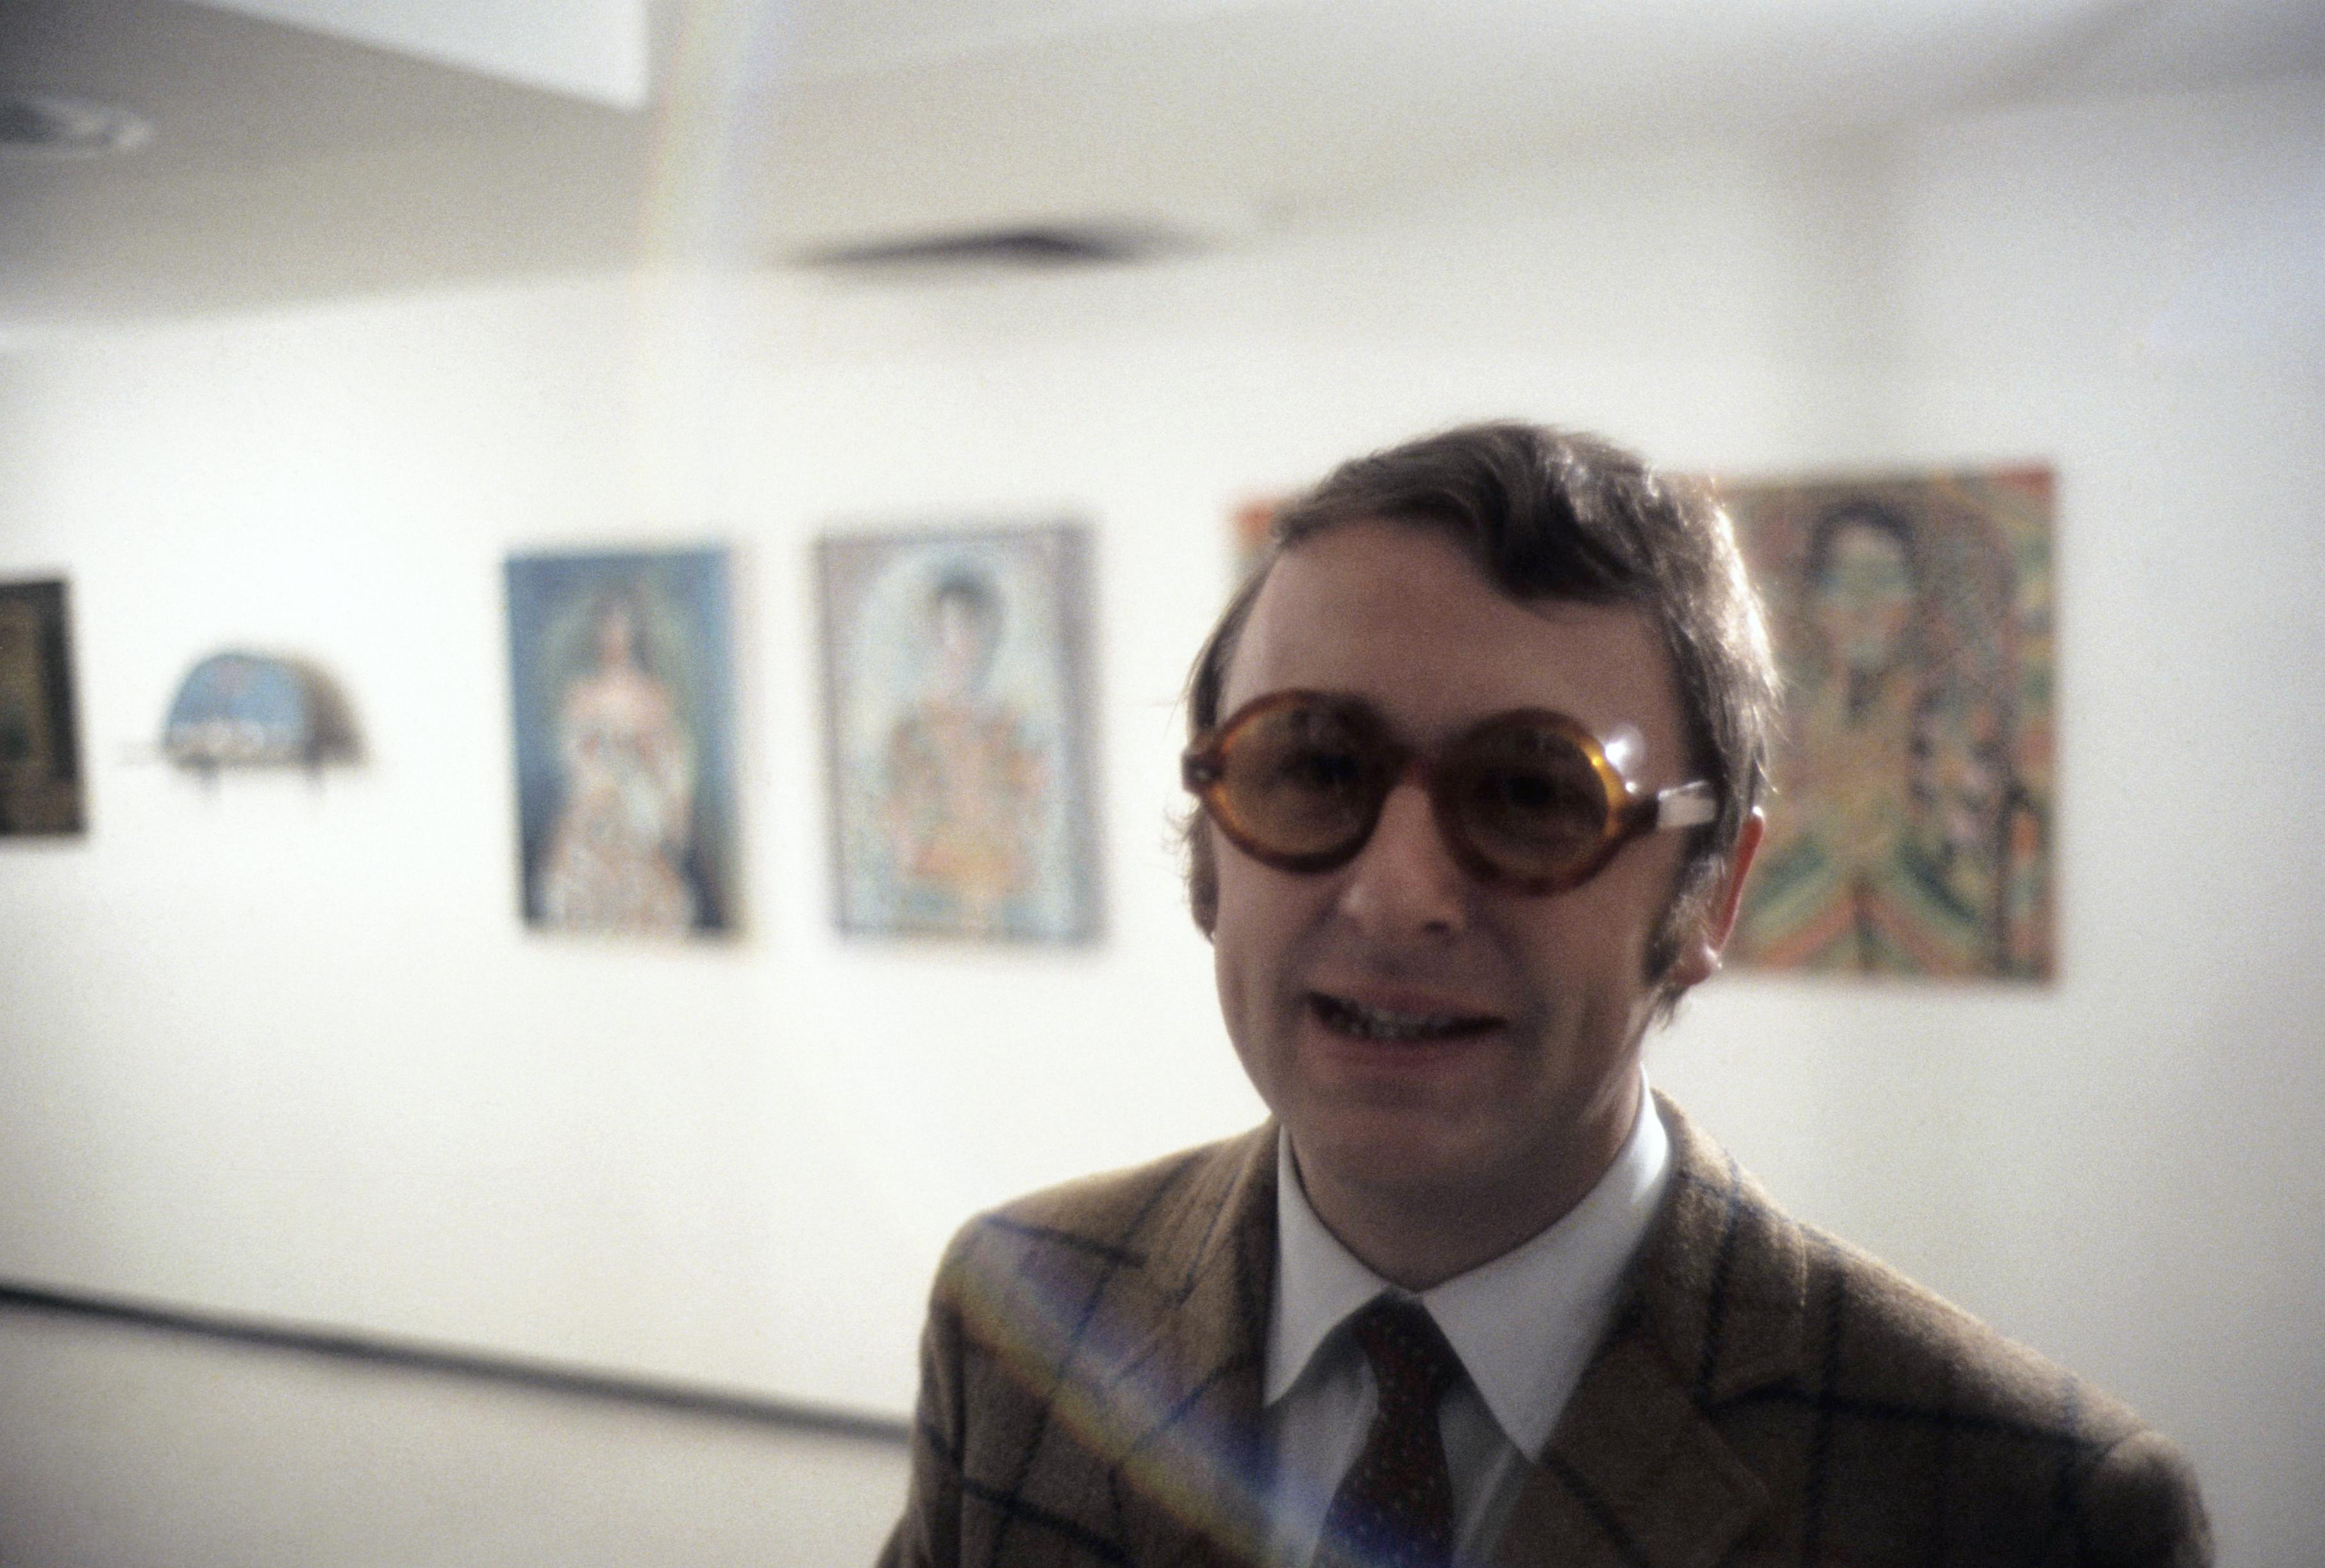 Jan van der Marck smiles, wearing dark tinted, round-framed glasses and a brown tweed sport jacket, with a white shirt and tie. Behind him are artworks hung on a white gallery wall.